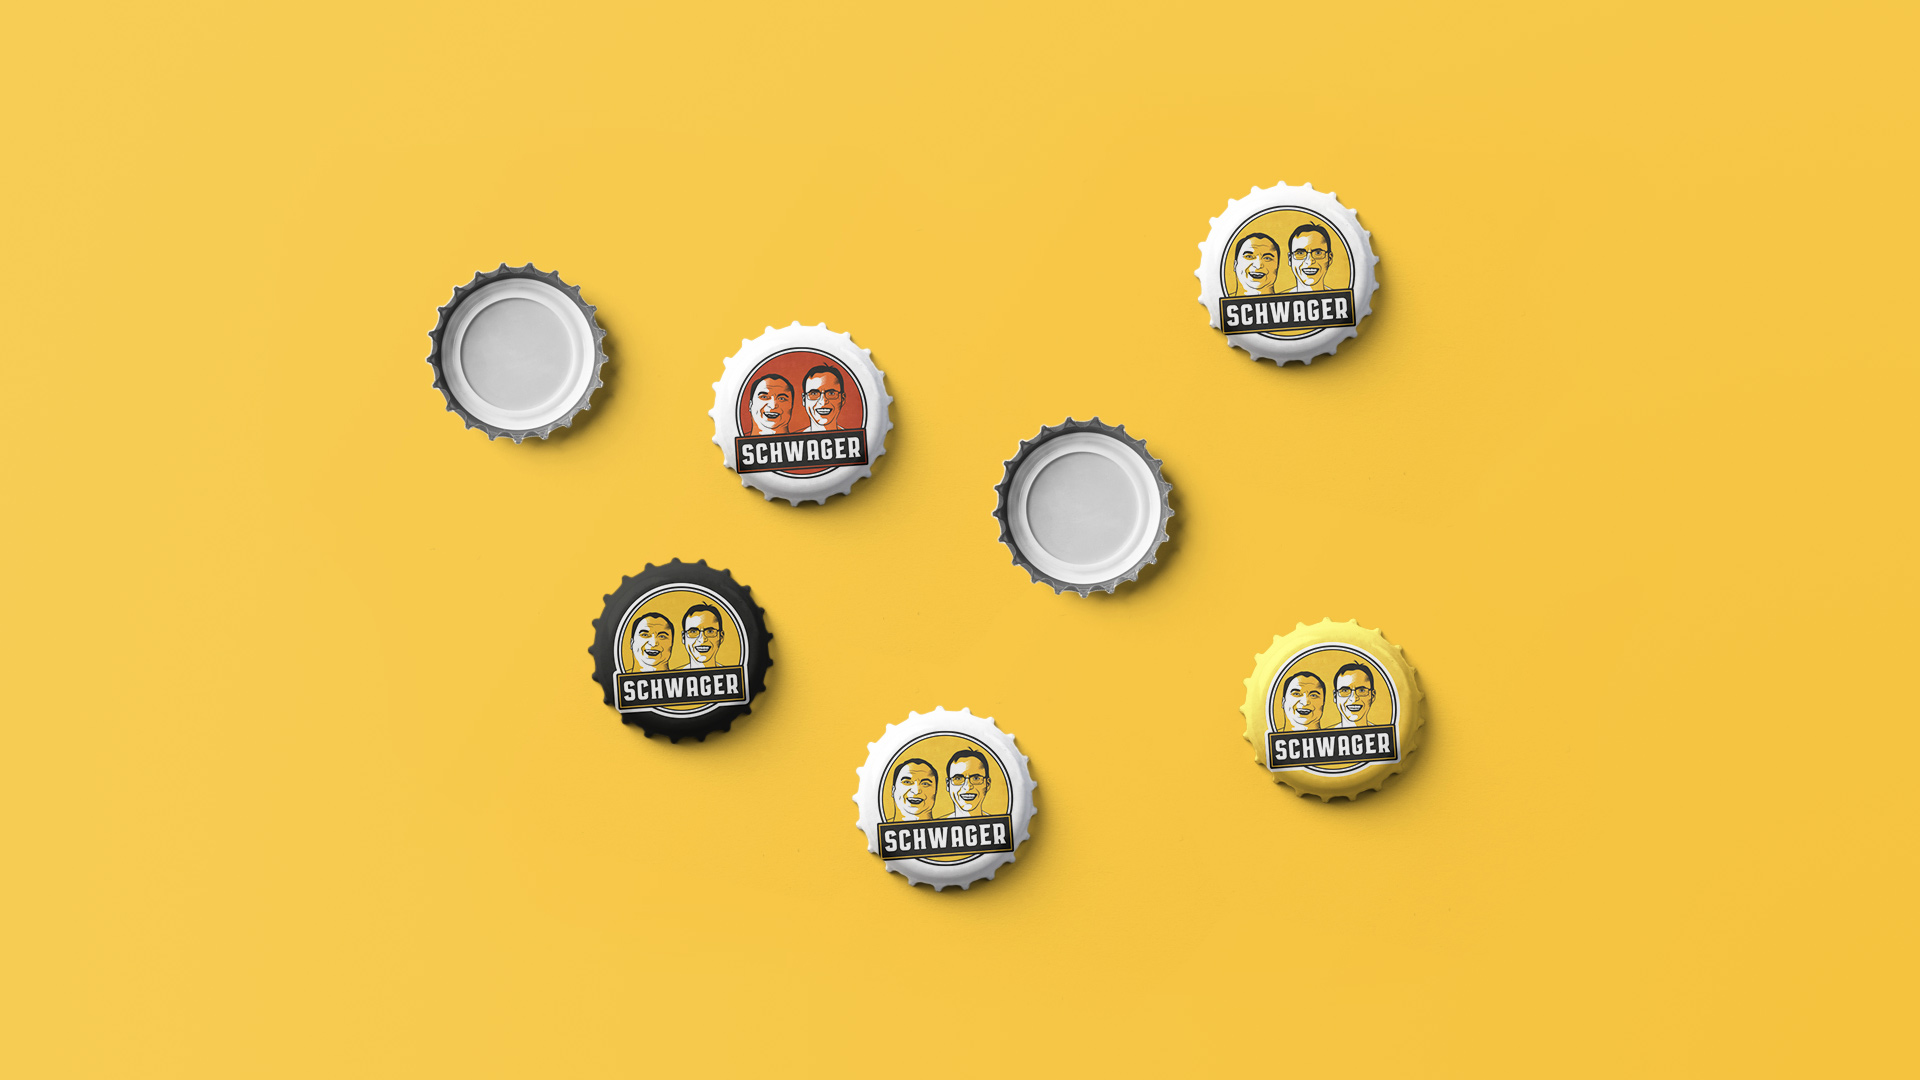 Usage of logo on beer caps